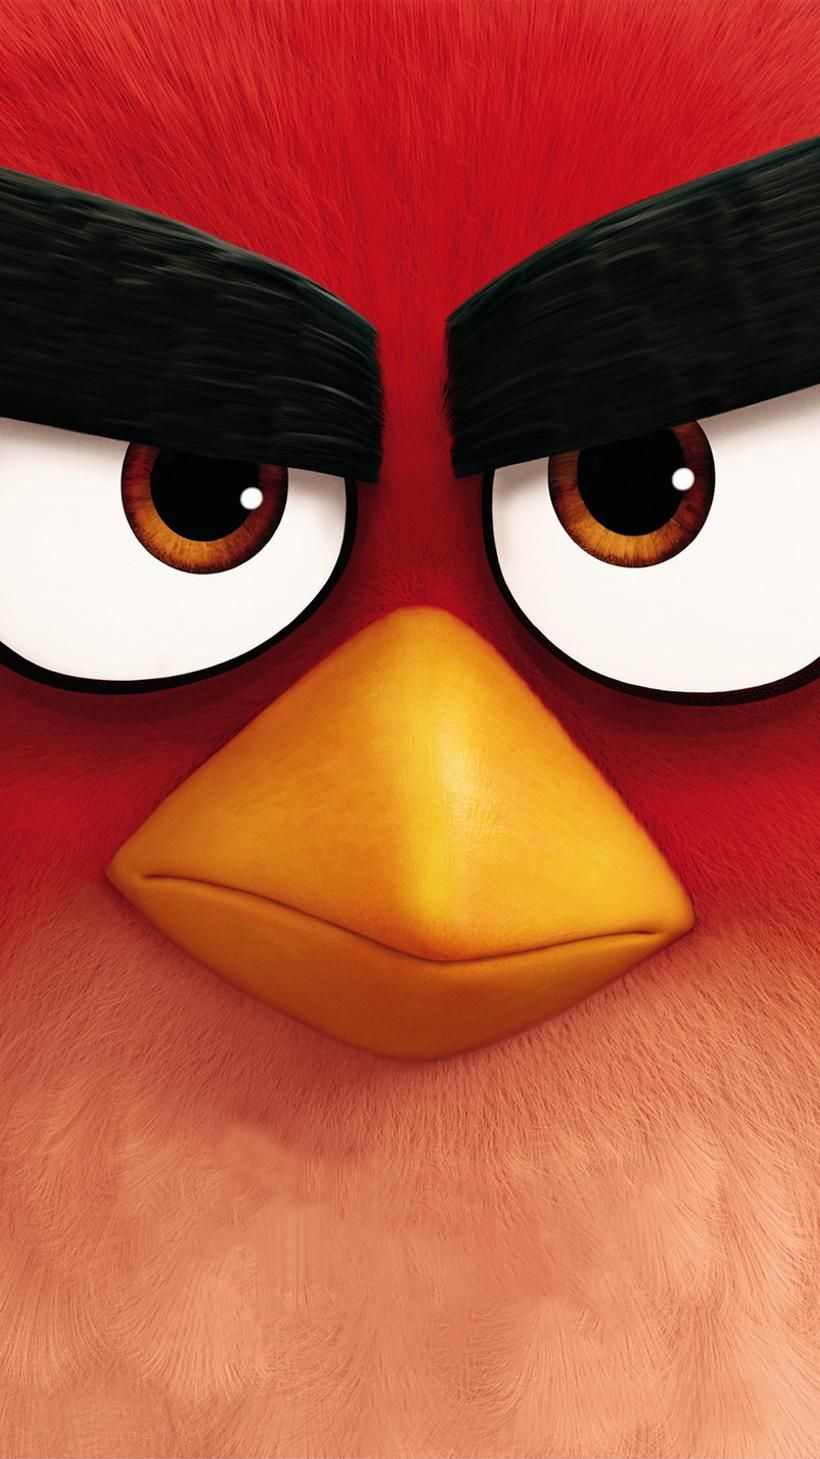 The Secret Life Of Pets 2016 Phone Wallpaper Moviemania Angry Bird Pictures Angry Birds Characters Angry Birds Wallpaper